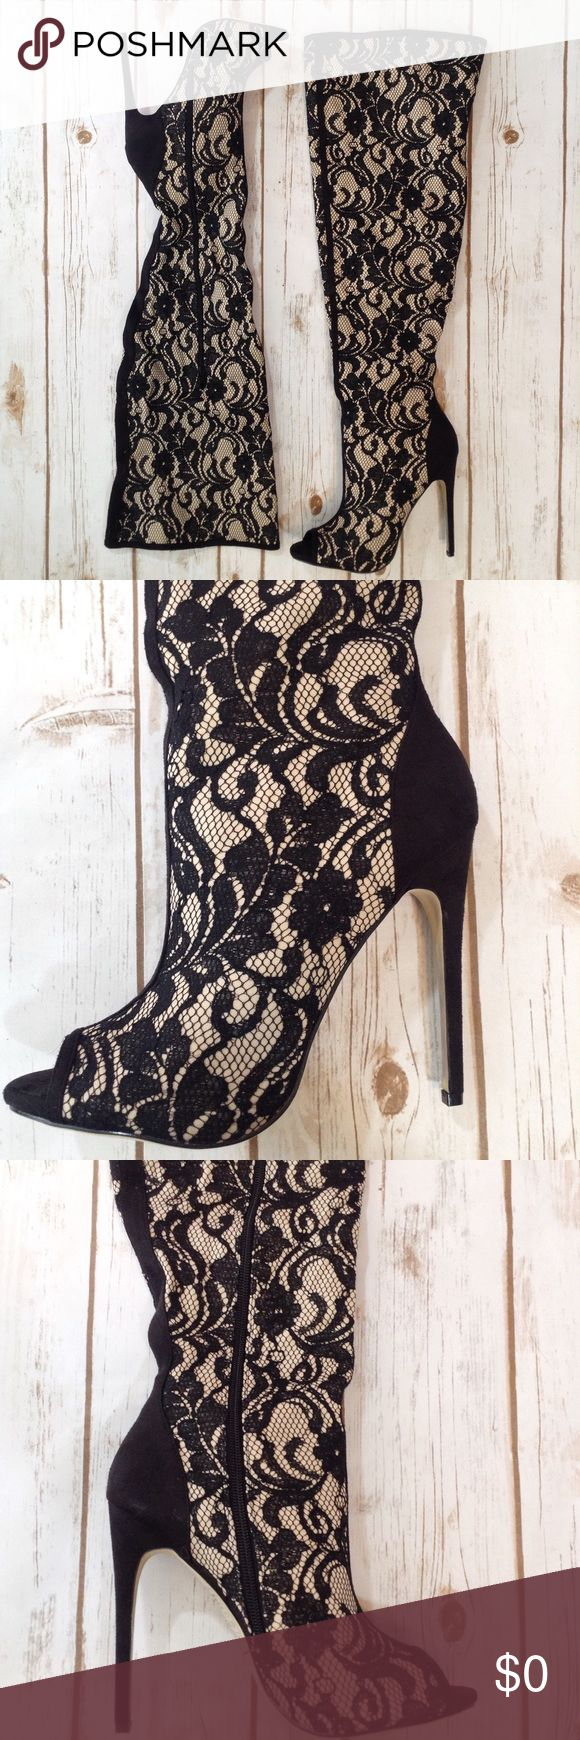 """🆕 Madison Thigh-High Heels (9-9.5) Madison by JustFab thigh-high heeled boots. Size 9.5. Fits a 9-9.5, IMO. Heel height is approx 4.5"""". Super SEXY! Features decorative lace material, open/peep-toe, floral pattern and a side zipper. Please use offer button for all offers and bundle for bigger discounts. Thanks! 💋 Madison Shoes Heels"""